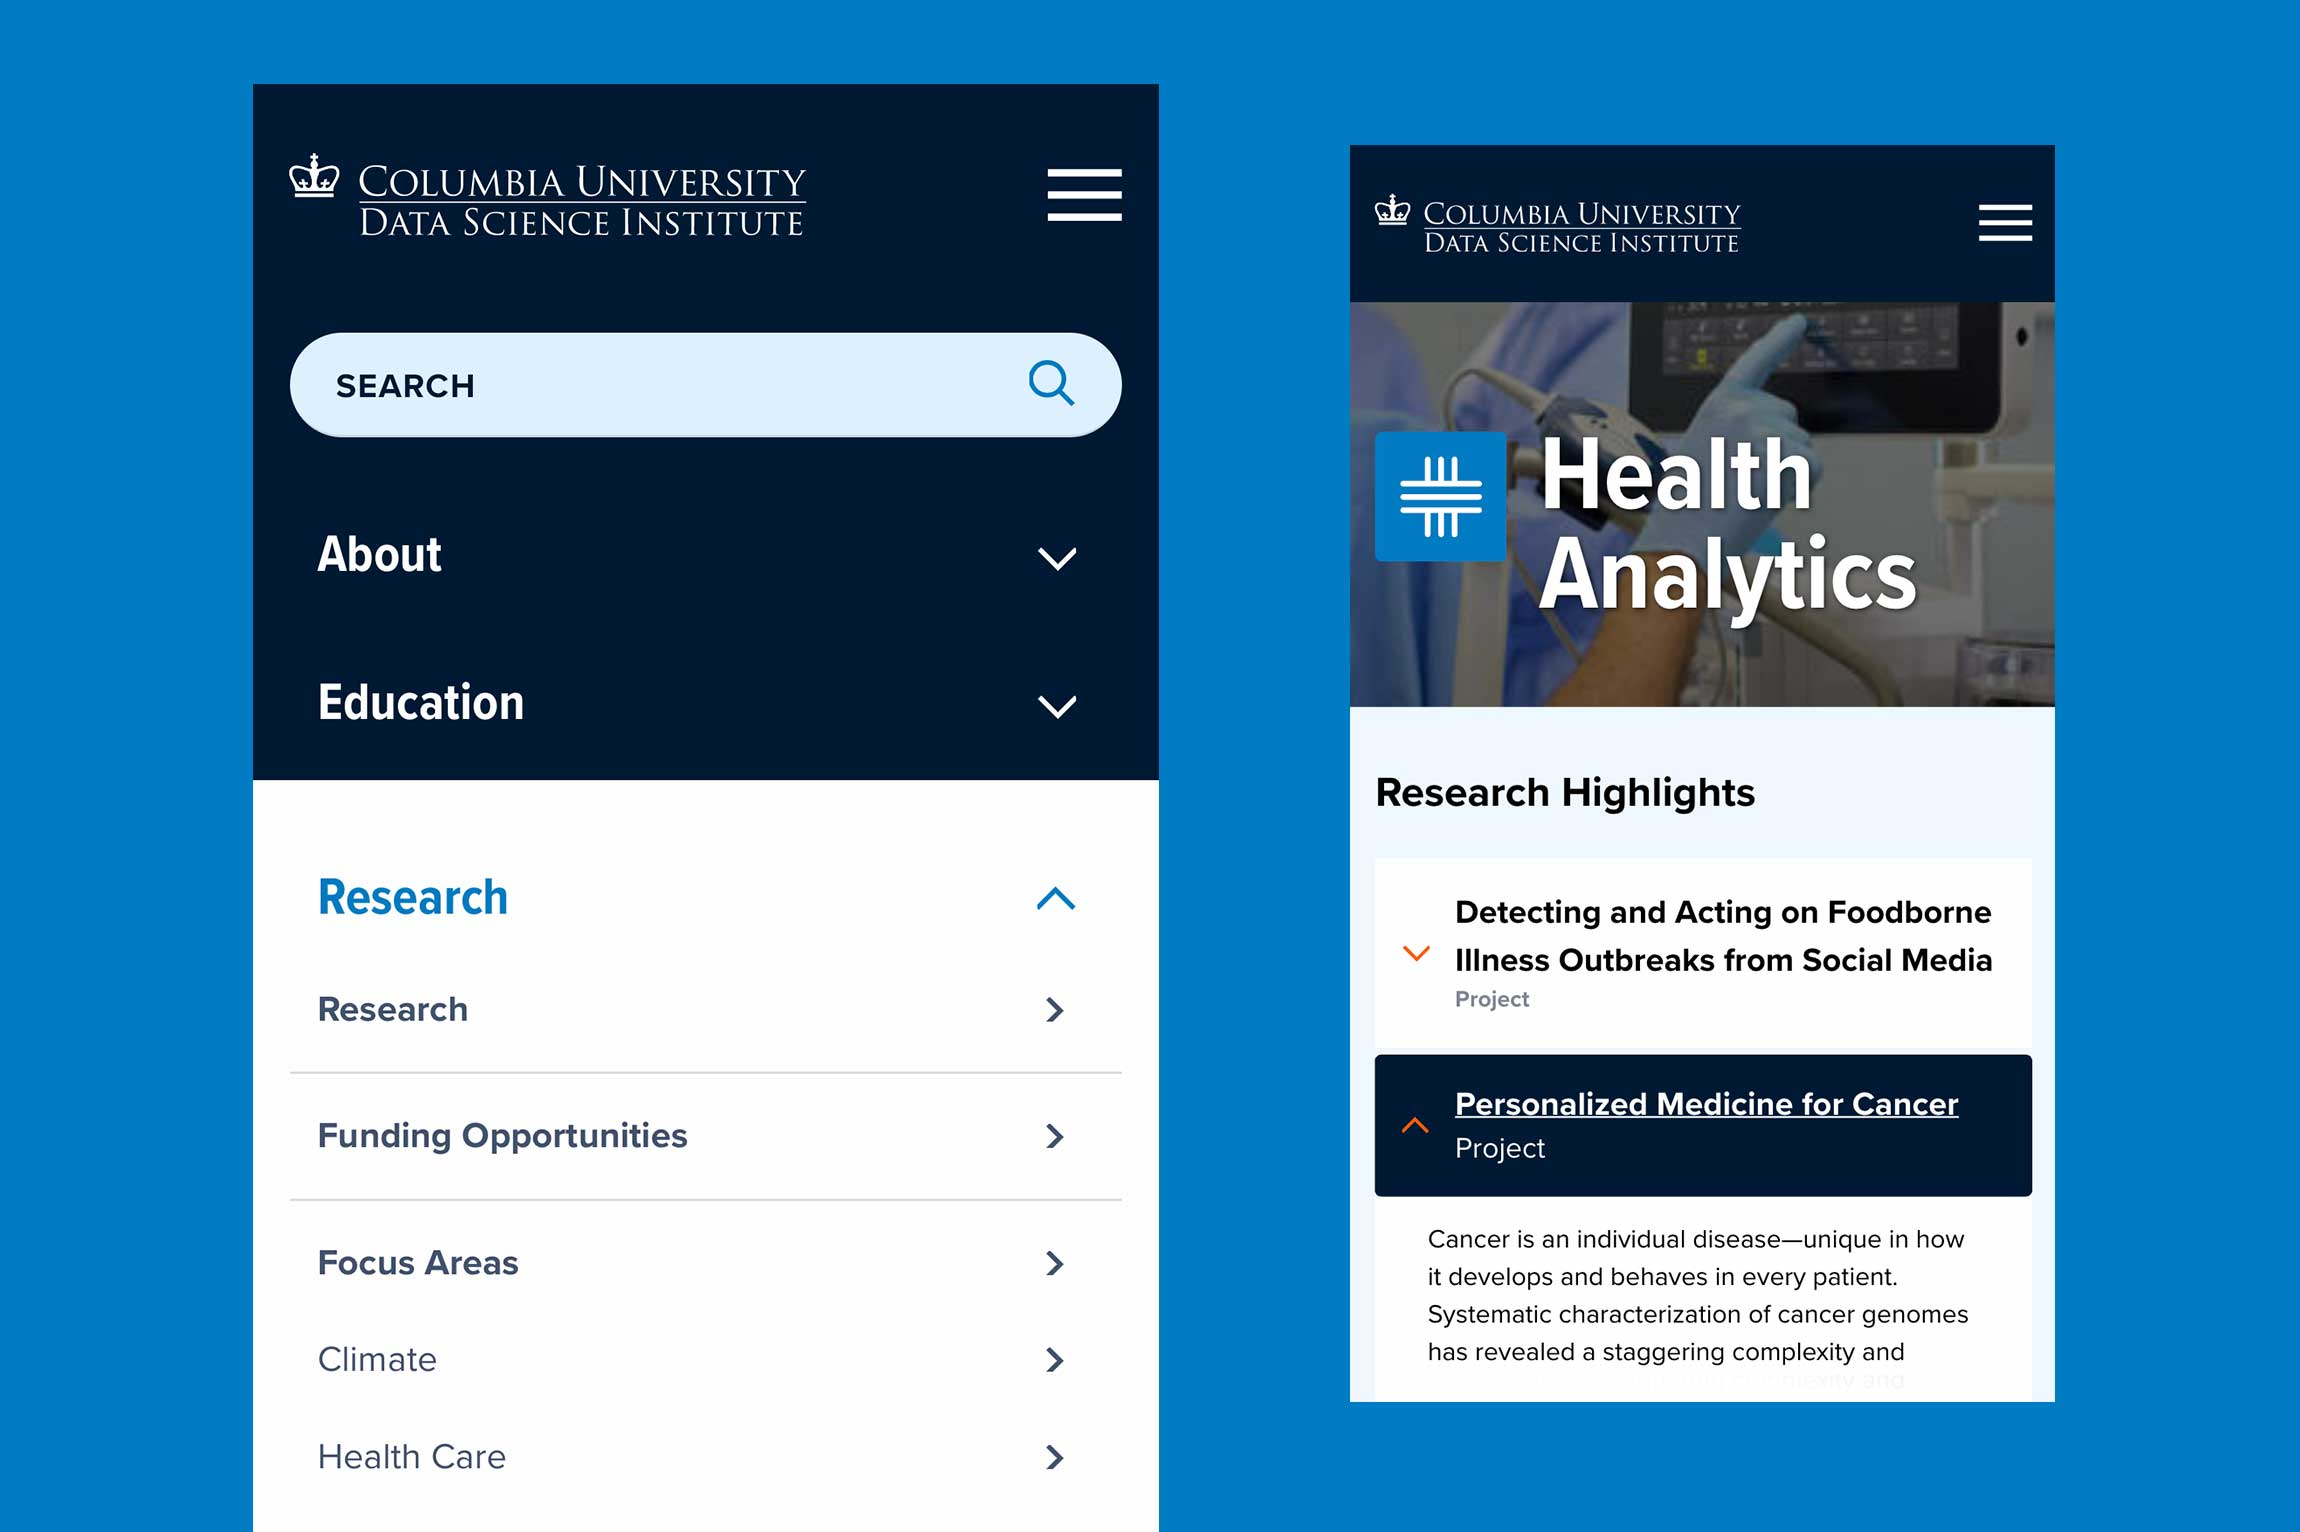 Columbia-Data-Science-Institute-website-design-2